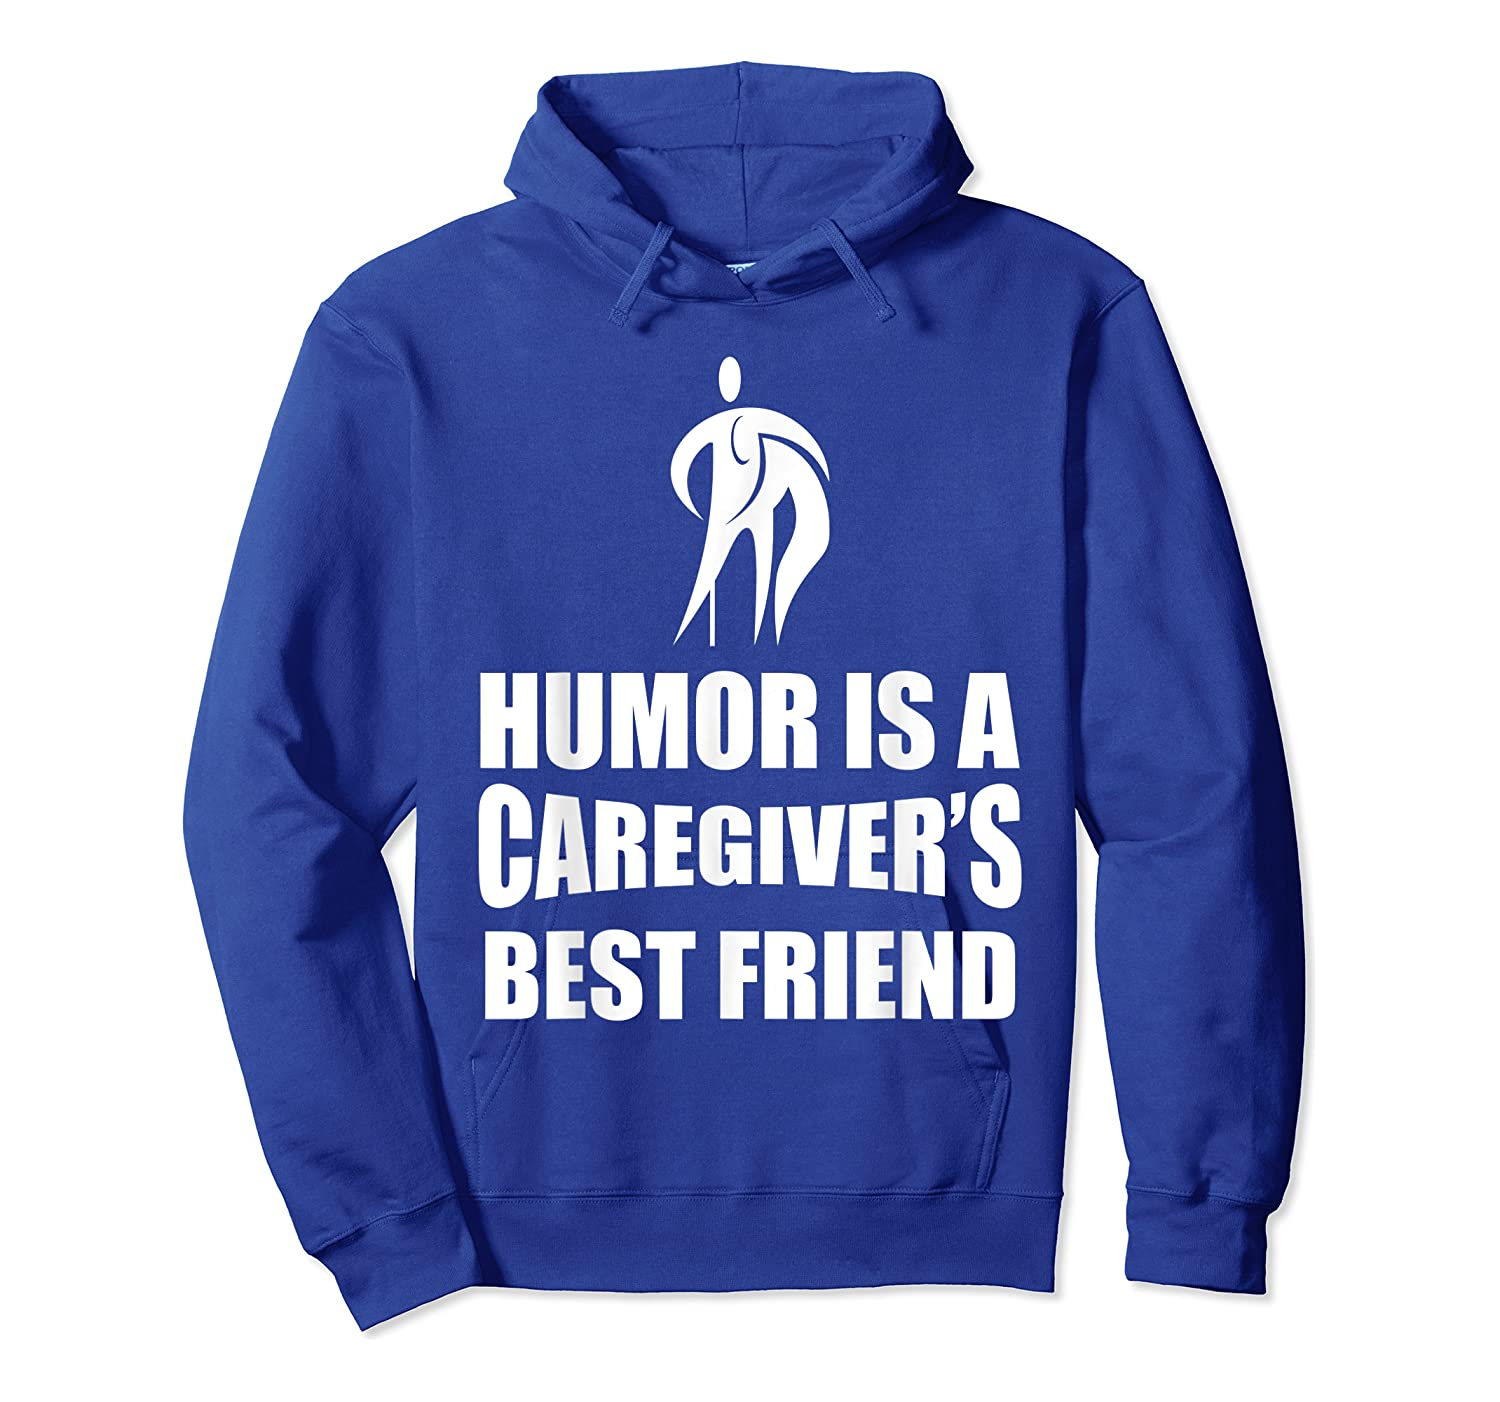 Humor Is A Caregiver's Best Friend Aca Apparel Shirts Unisex Pullover Hoodie